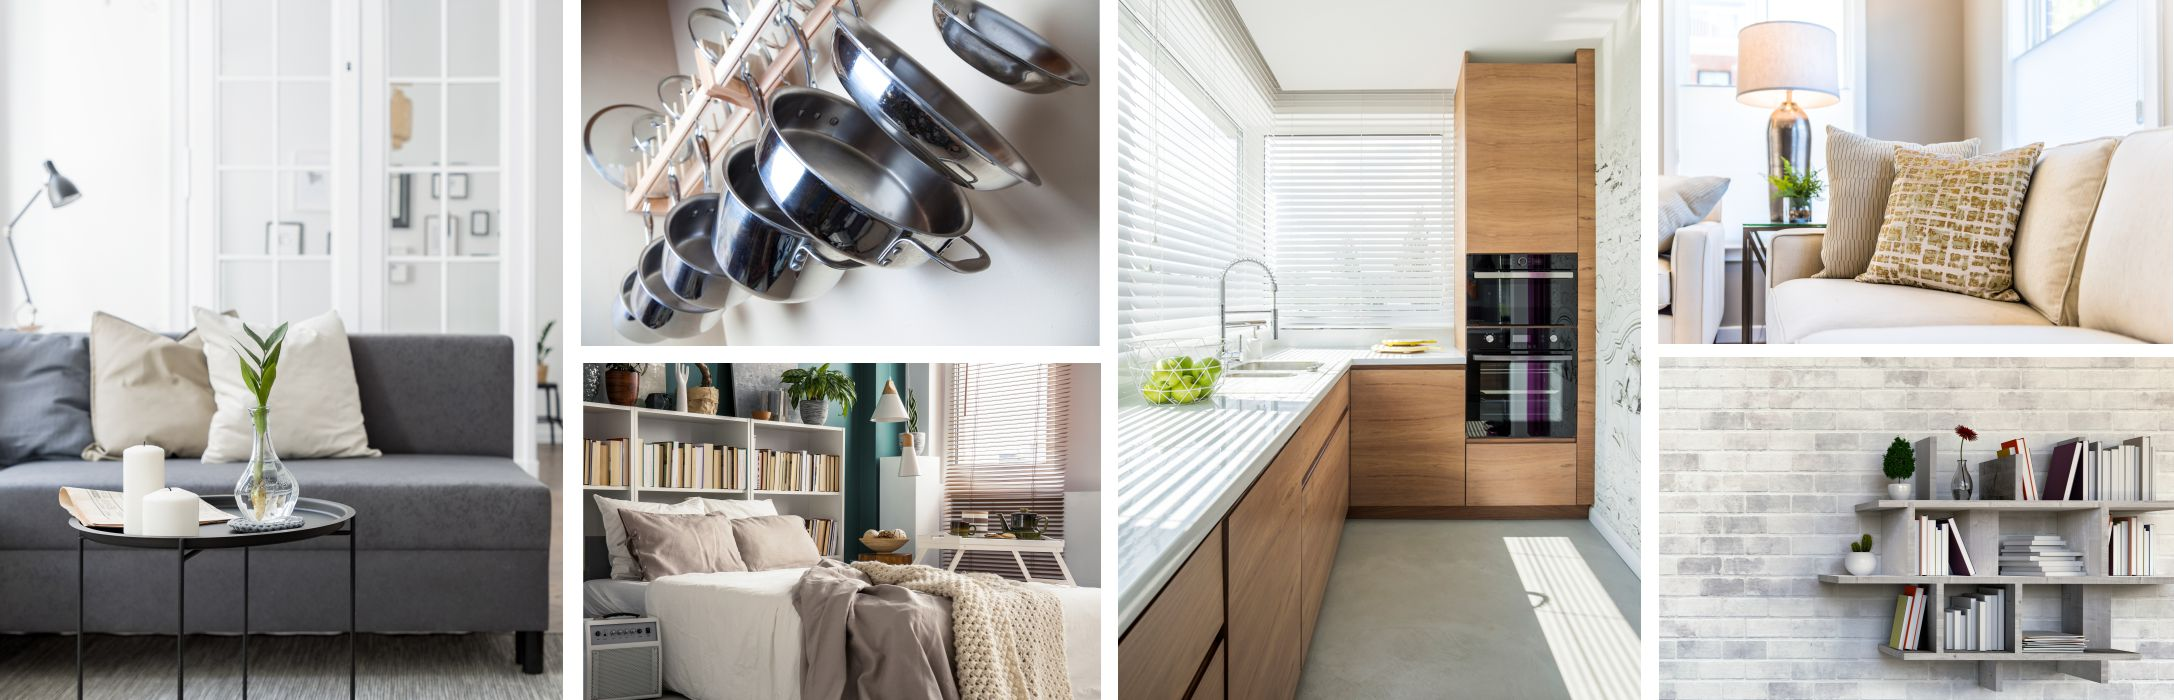 collage of ideas for small spaces